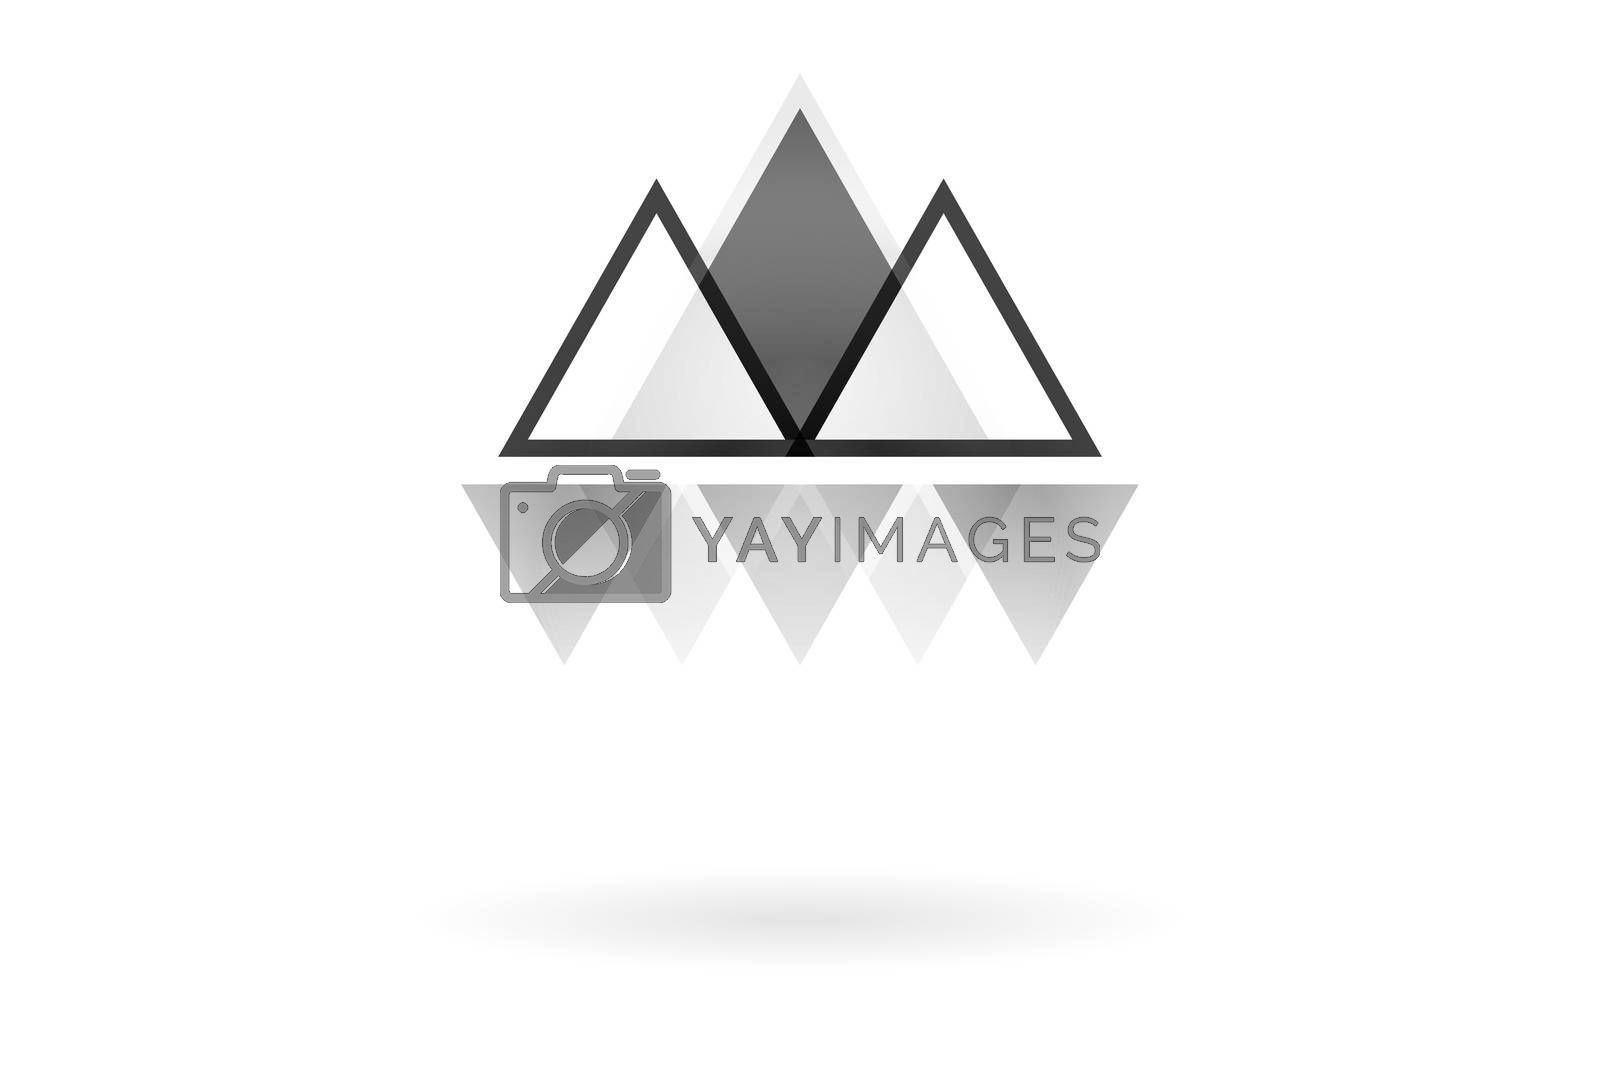 Royalty free image of Abstract geometric pattern, monochrome overlapping triangle mountain logo by mouu007